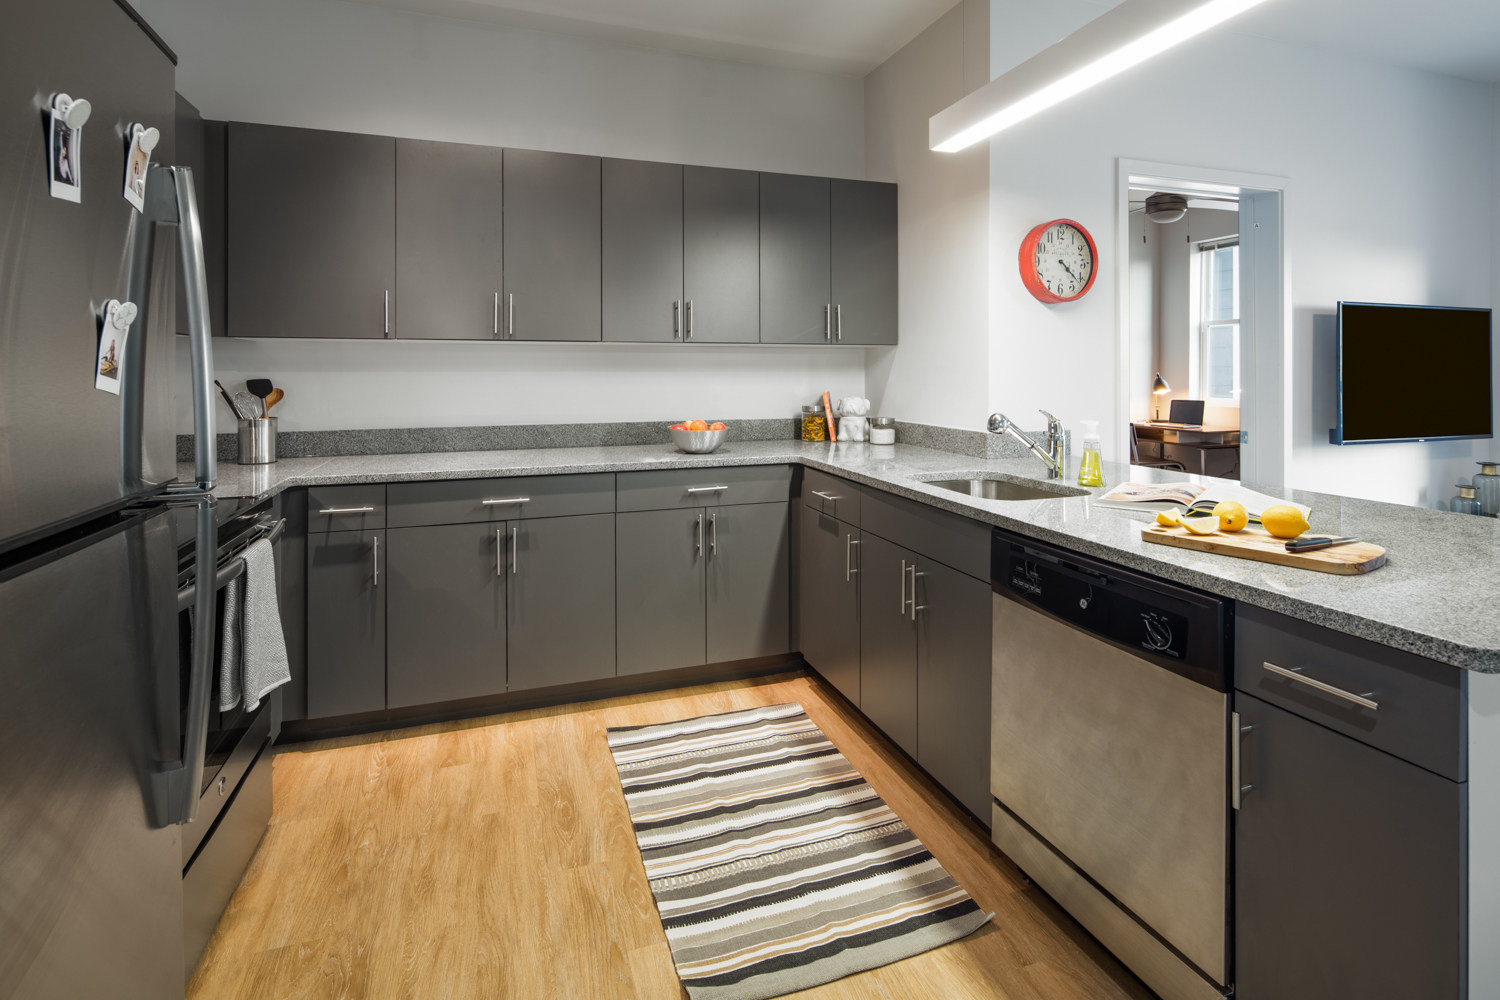 Quadreal property group invests 600 million us in student housing joint venture with ca student - The five star student dormitories boutique style spoil ...